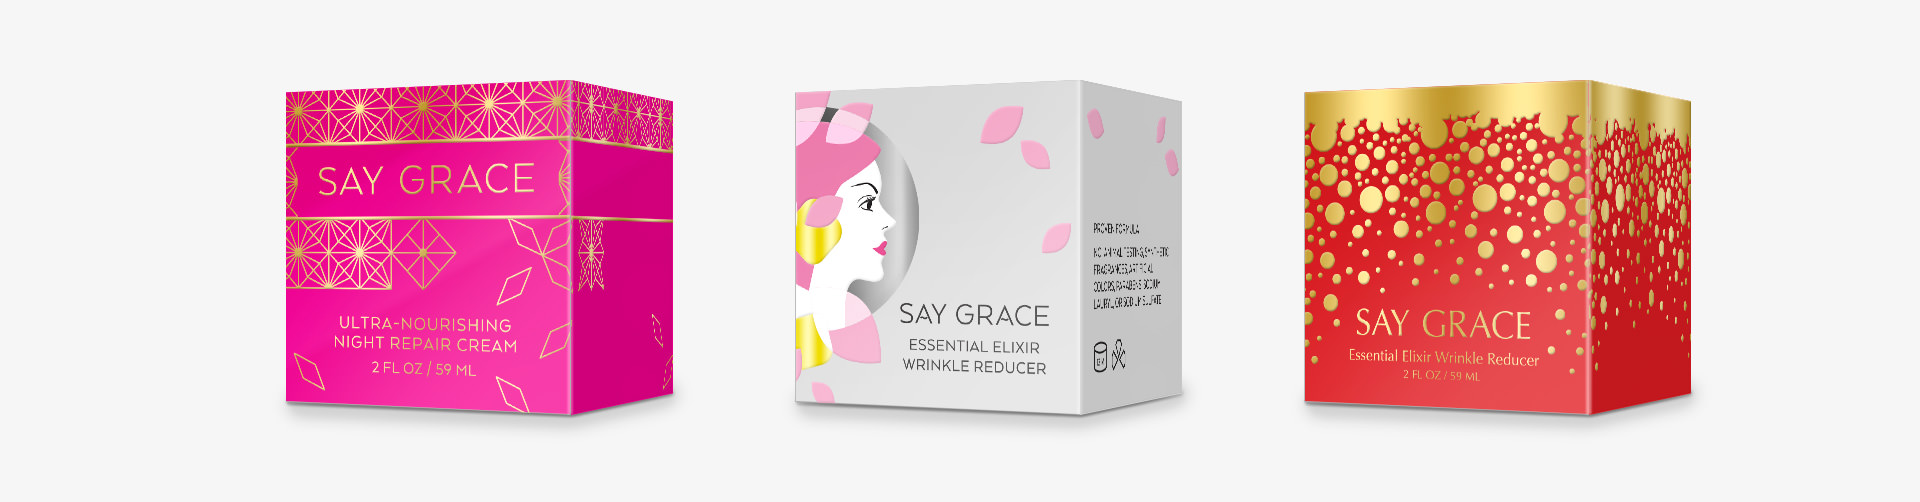 Grace and Frankie Season 2 Cosmetics Packaging Design